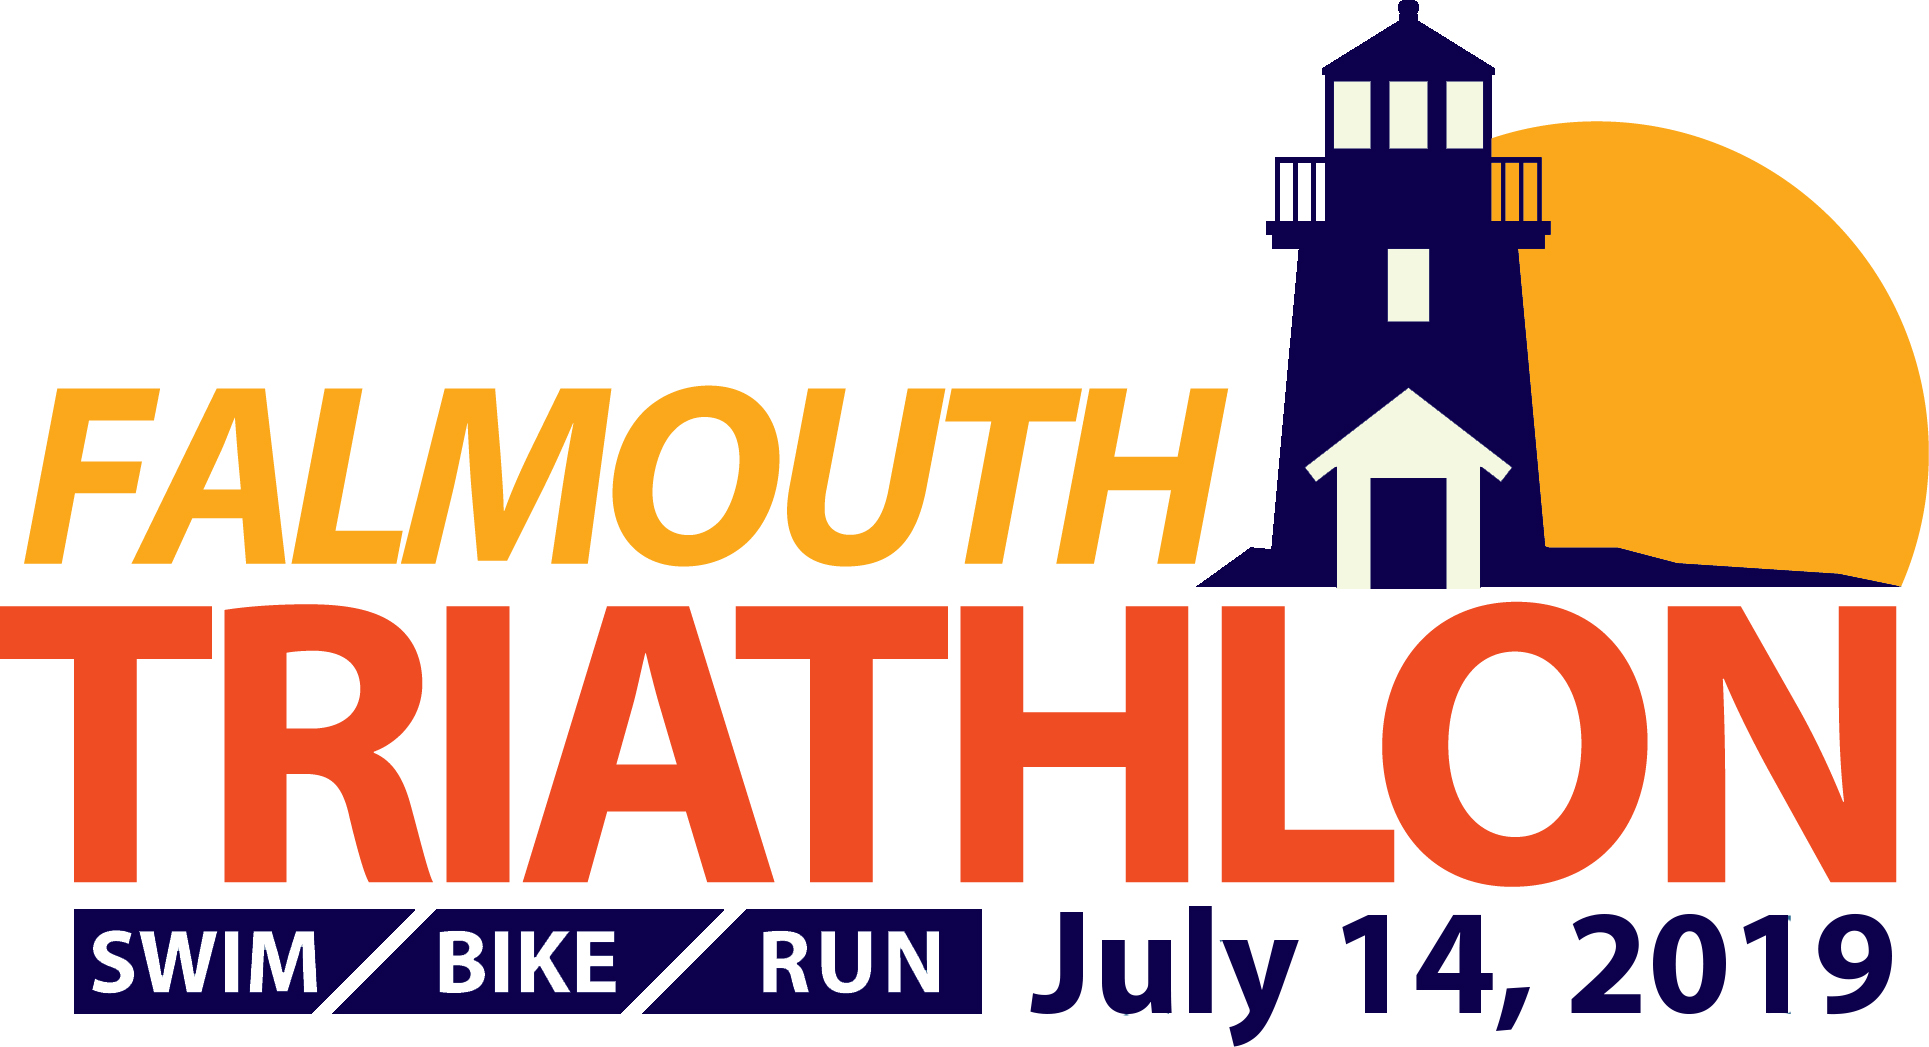 Falmouth Sprint Triathlon - 2019